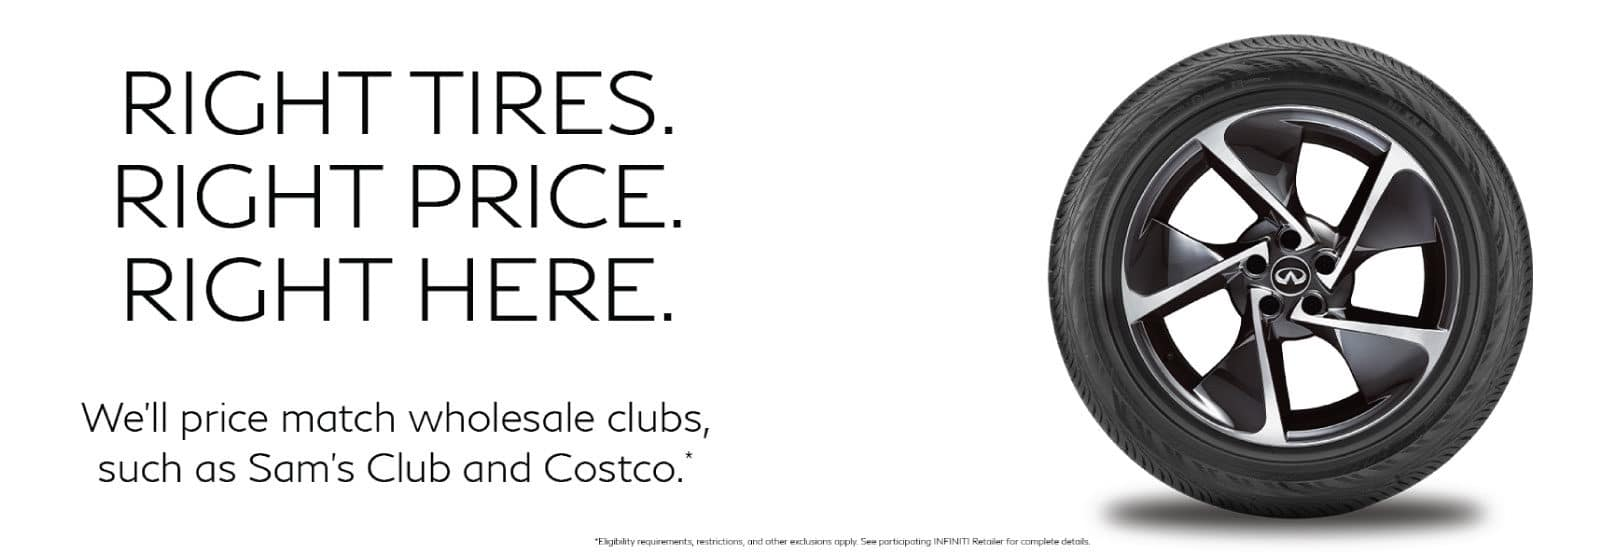 Image is of a tire. Tire offer to price match wholesale clubs, such as Sam's Club and Costco. See retailer for details.